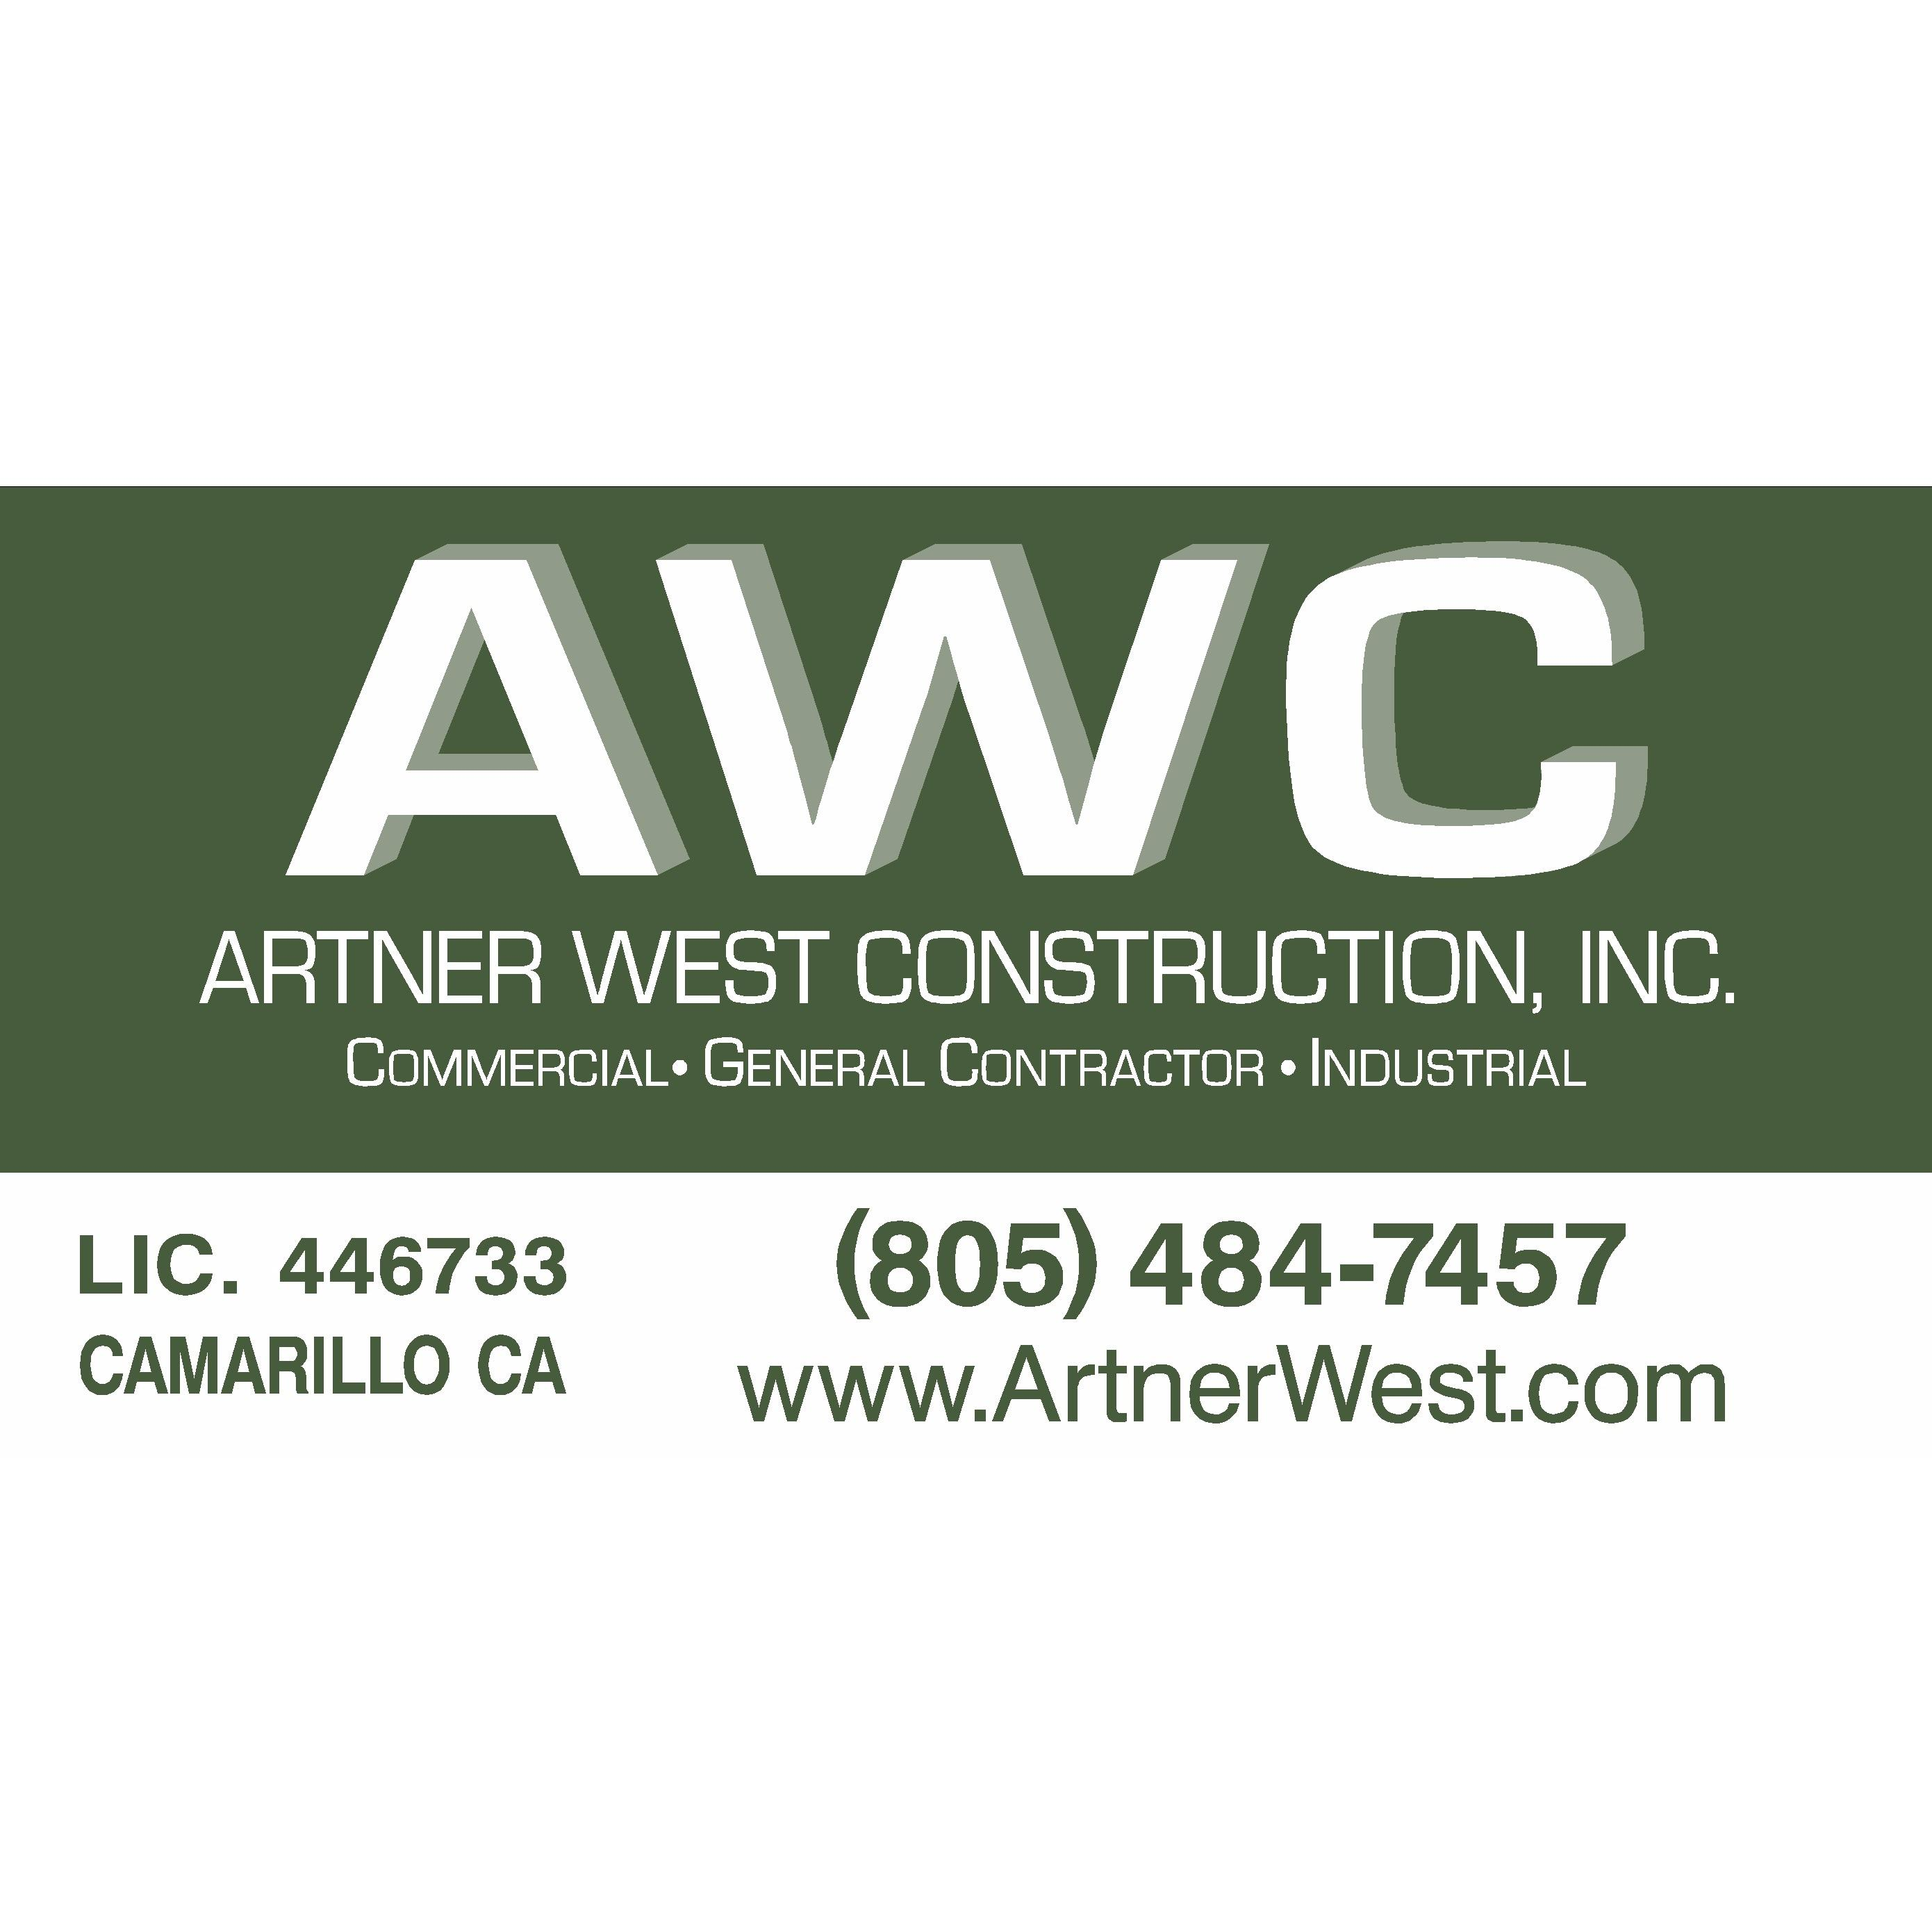 Artner West Construction, Inc.